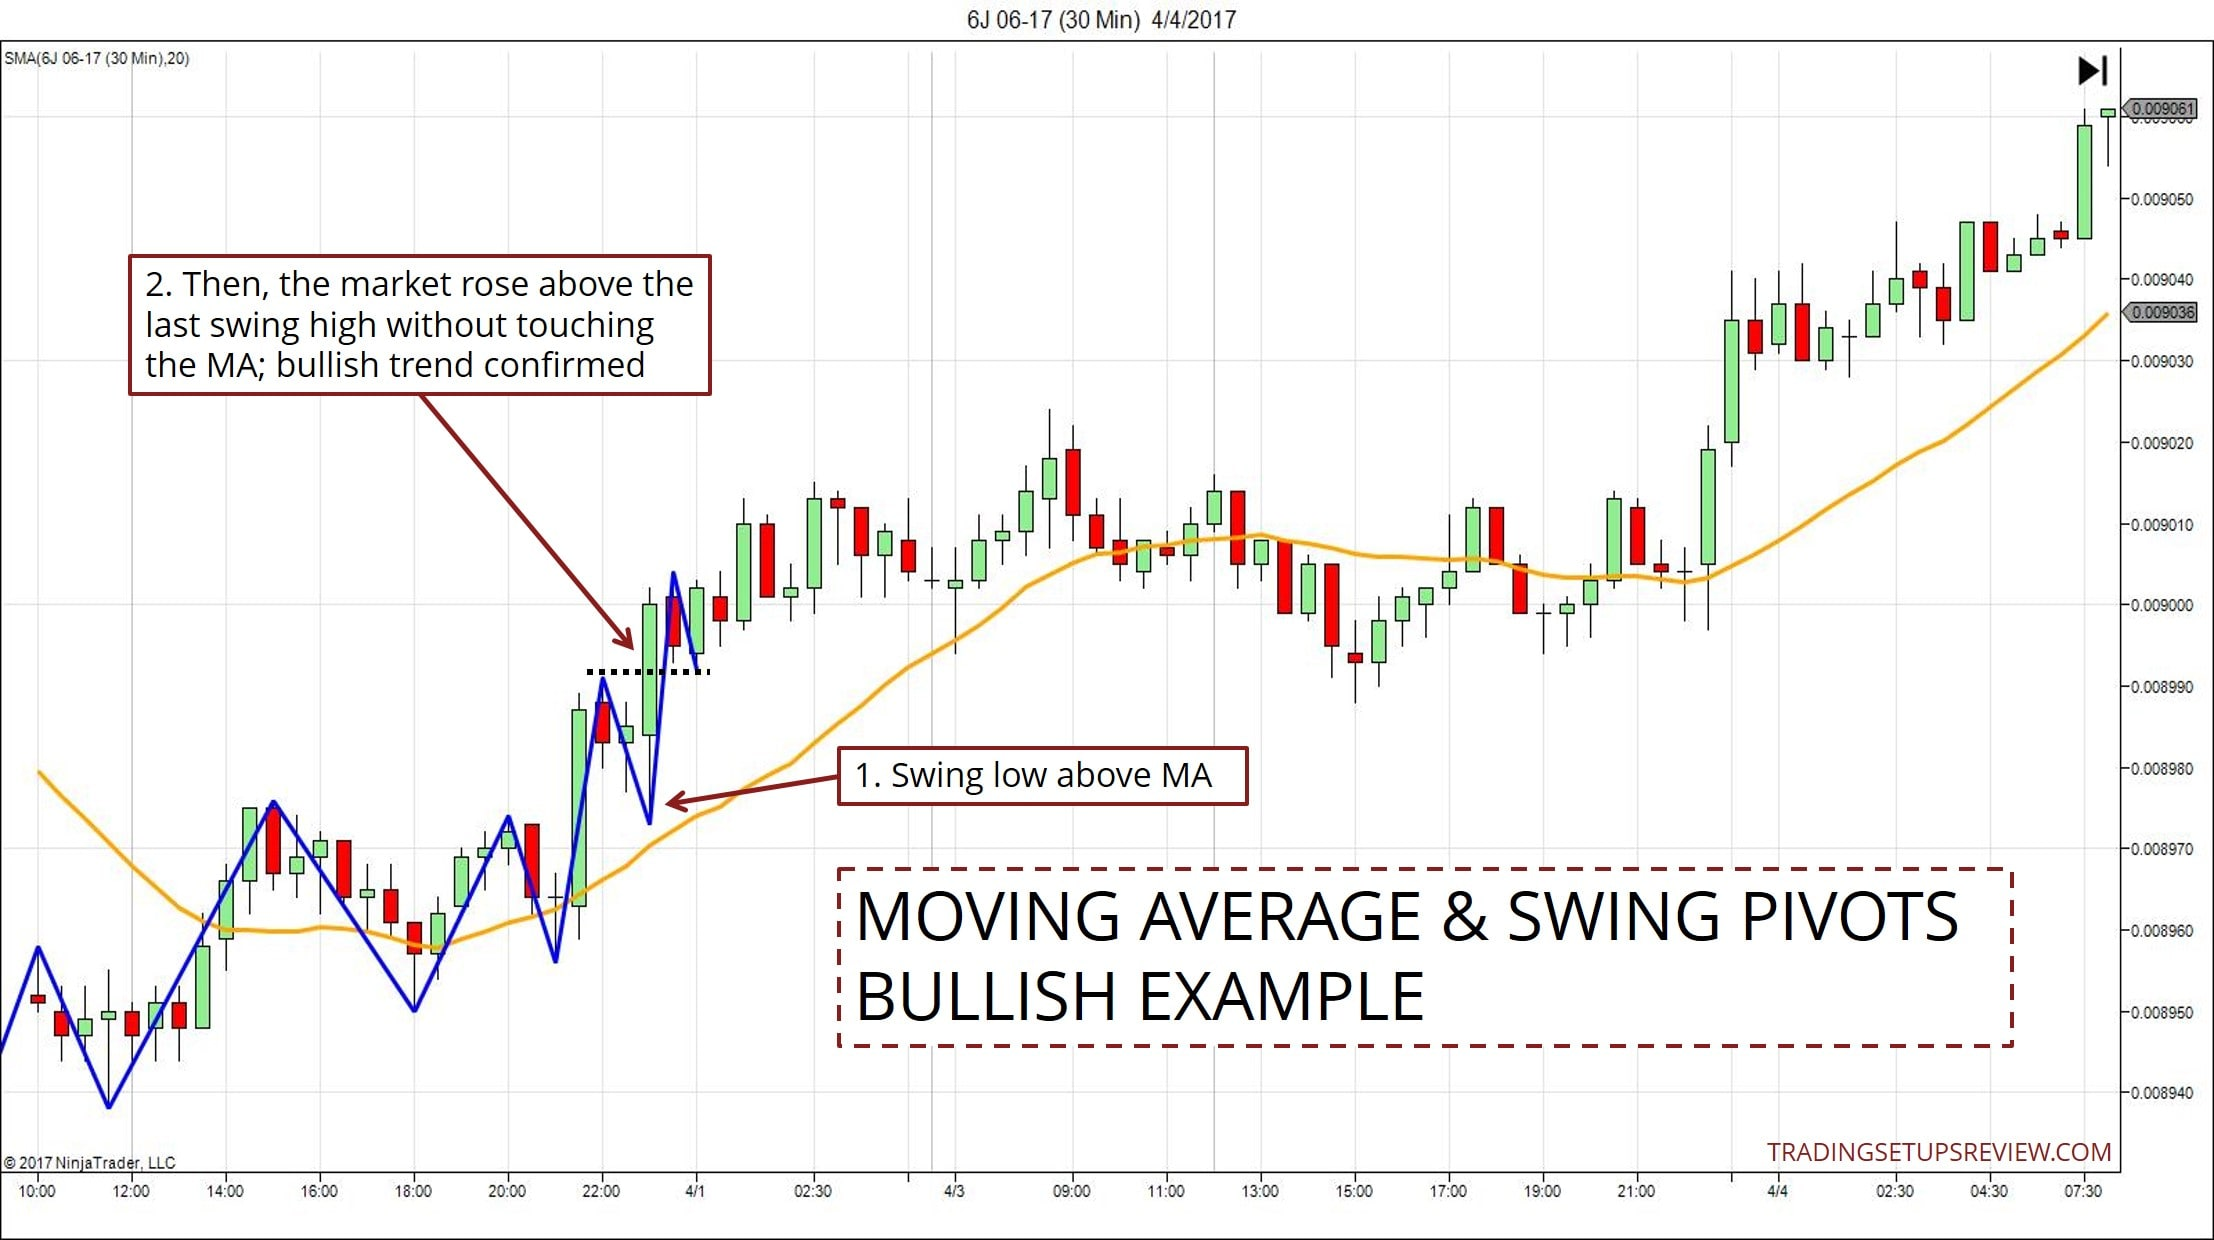 3 Ways To Identify A Trend With A Moving Average - Trading Setups Review